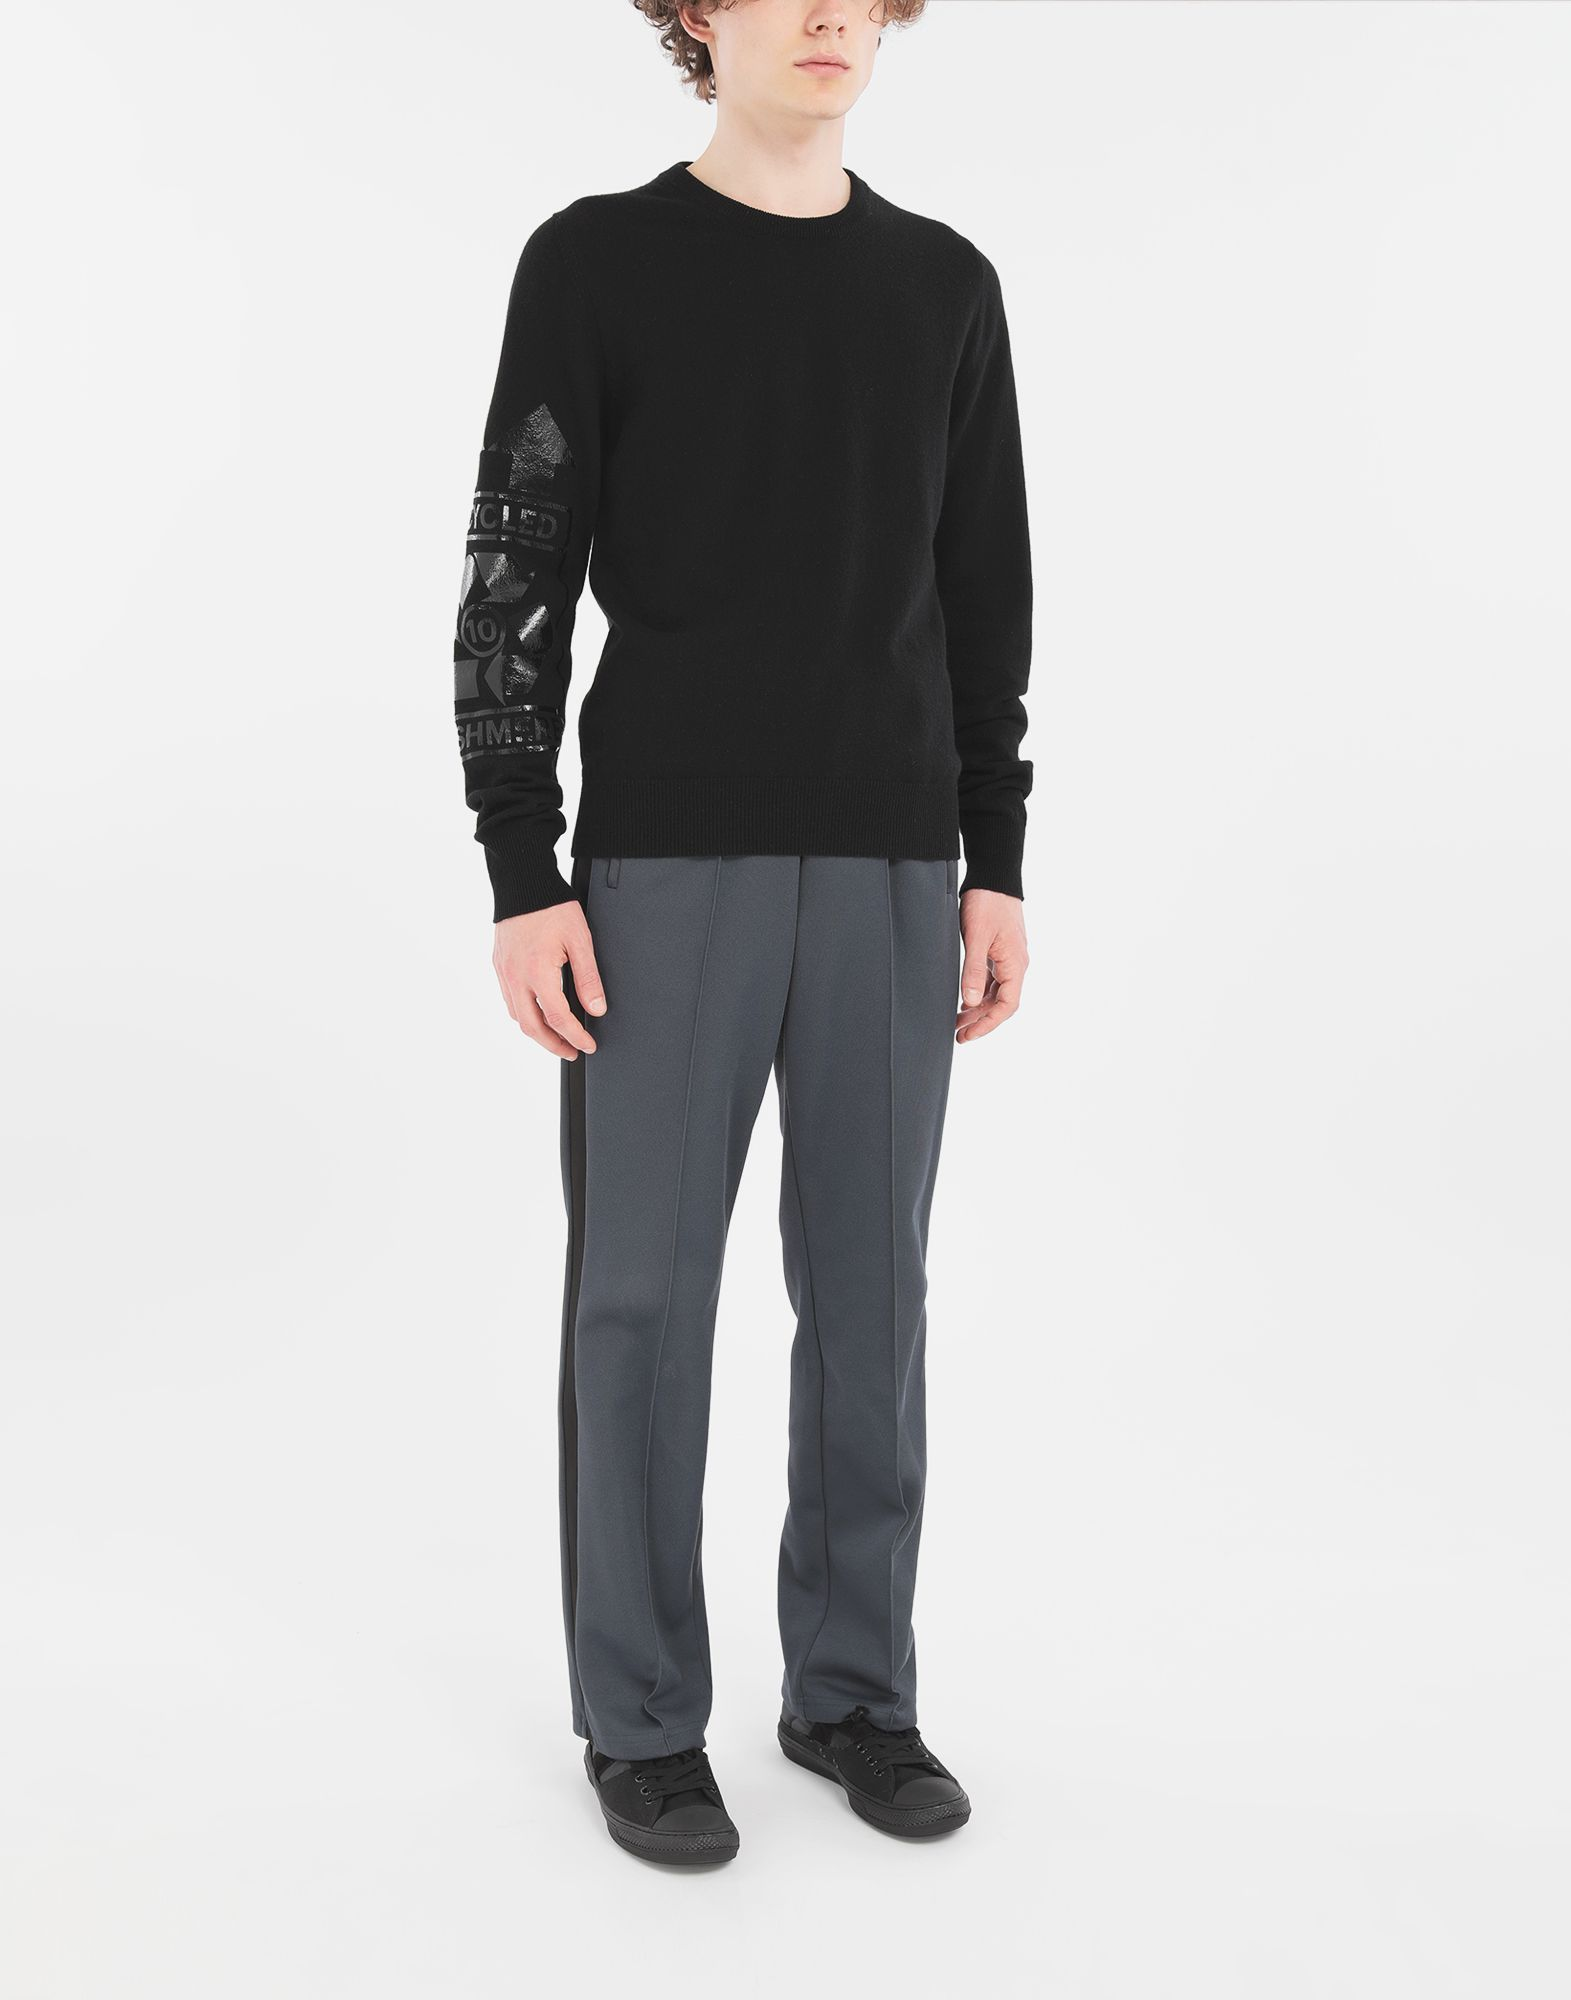 MAISON MARGIELA 'Recycled' sweater Crewneck Man d